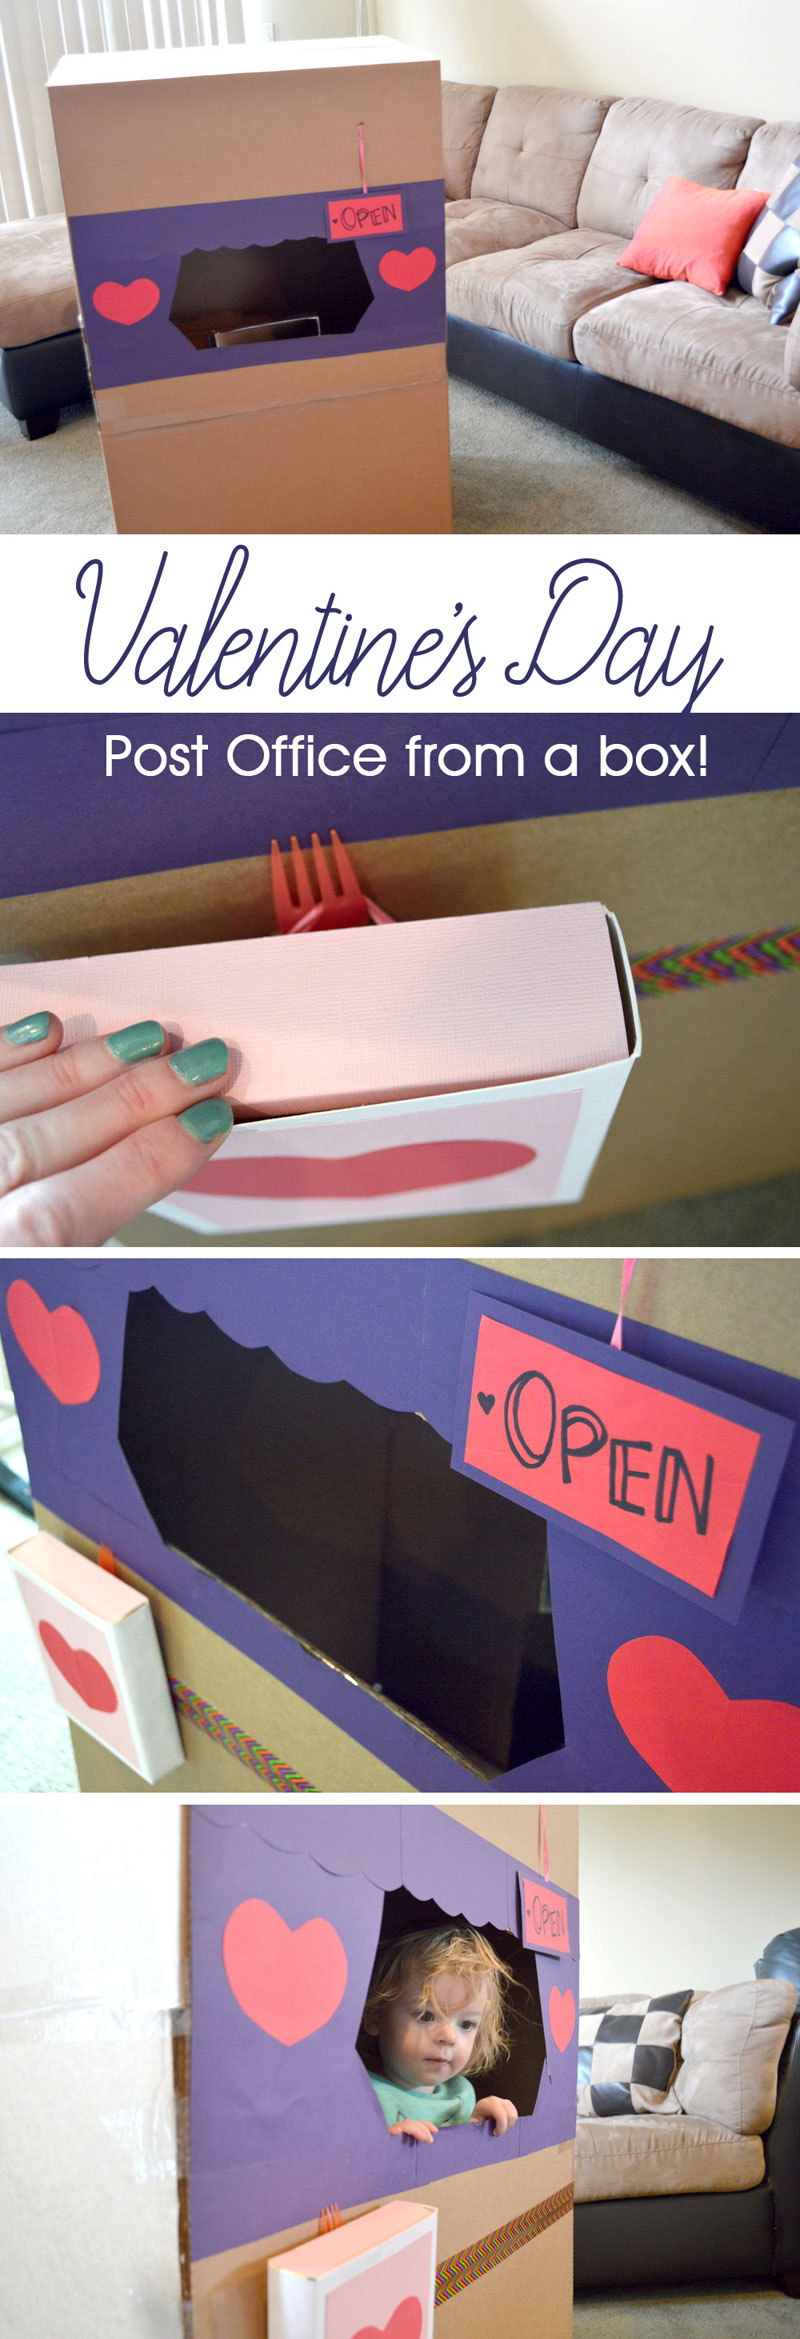 Make a Valentine's Day post office from a recycled box